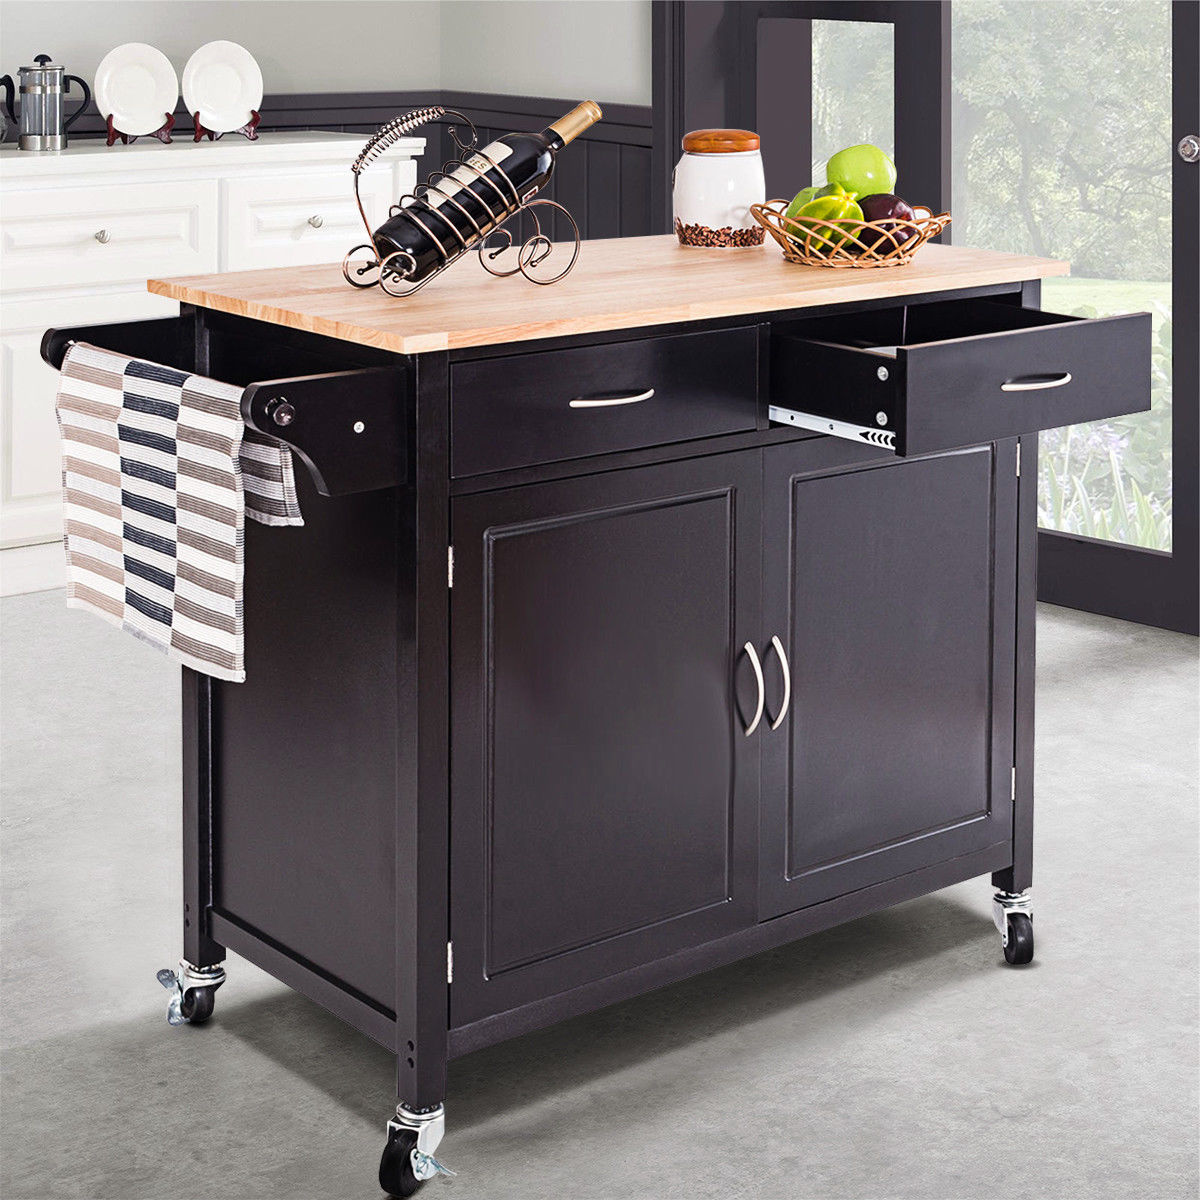 Costway Rolling Kitchen Cart Island Wood Top Storage Trolley Cabinet Utility Modern